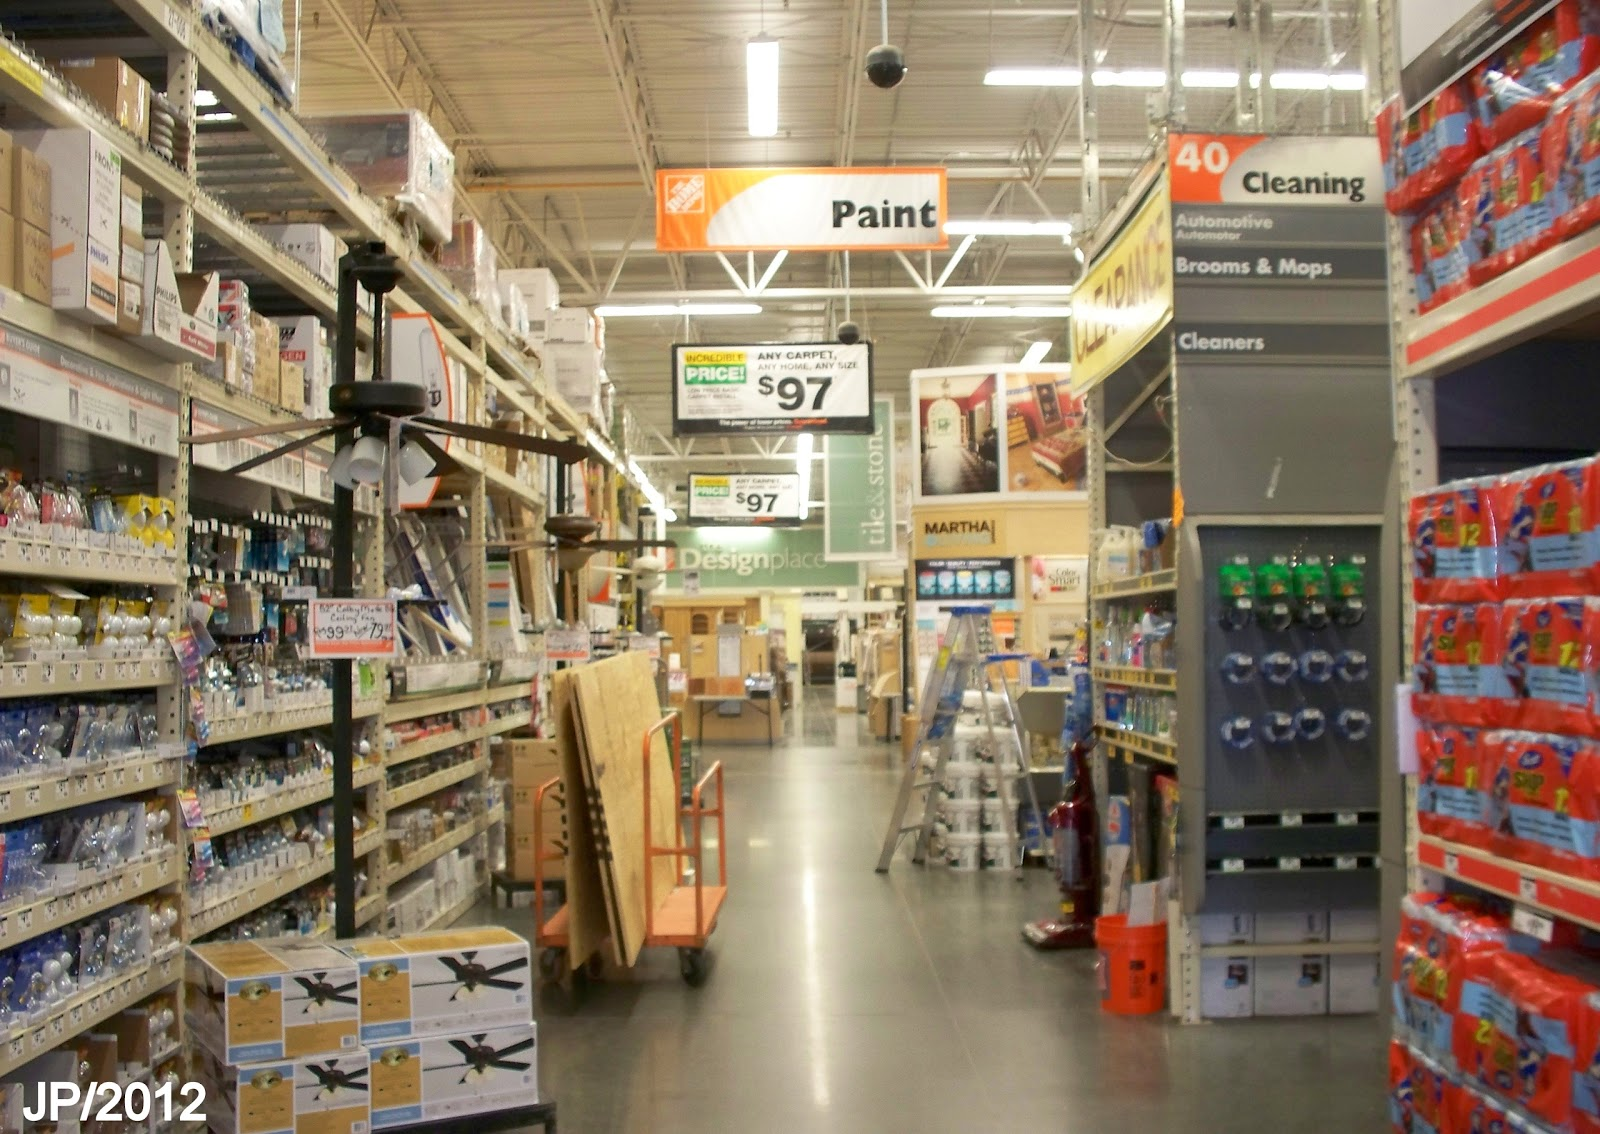 The Home Depot Paint Department Store